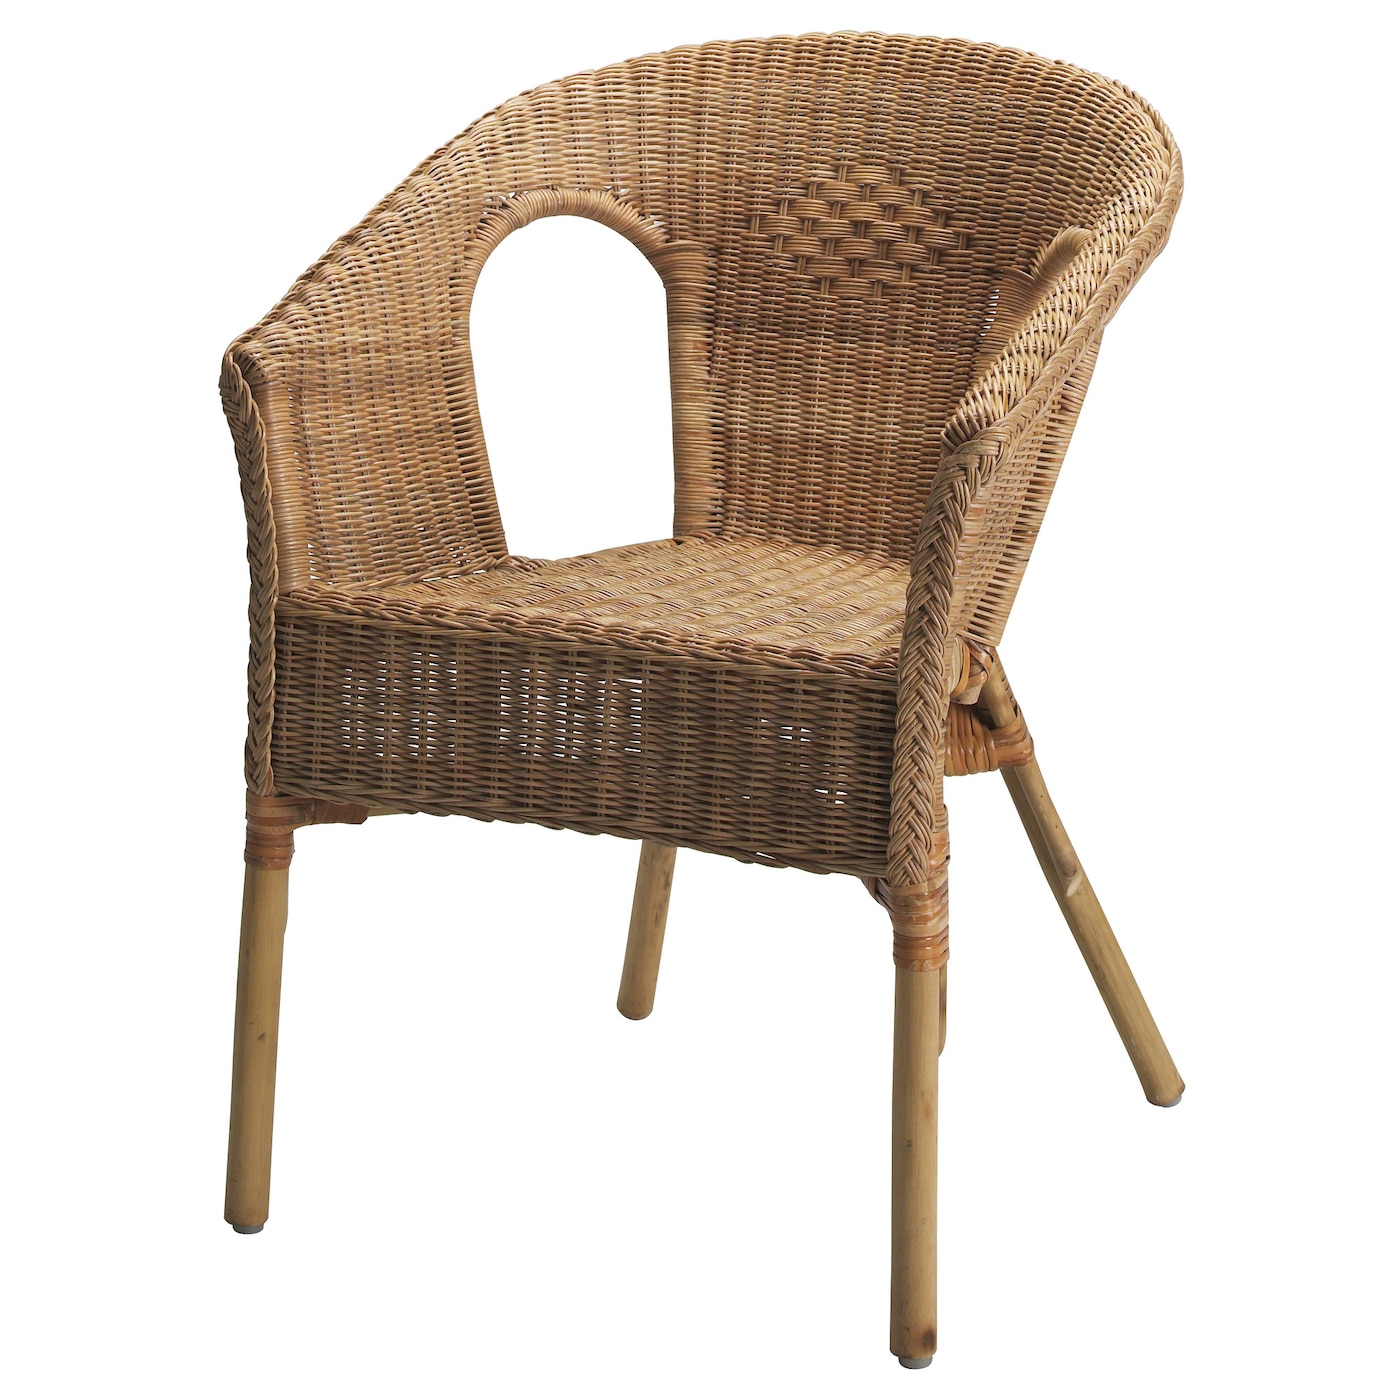 AGEN Chair - rattan/bamboo